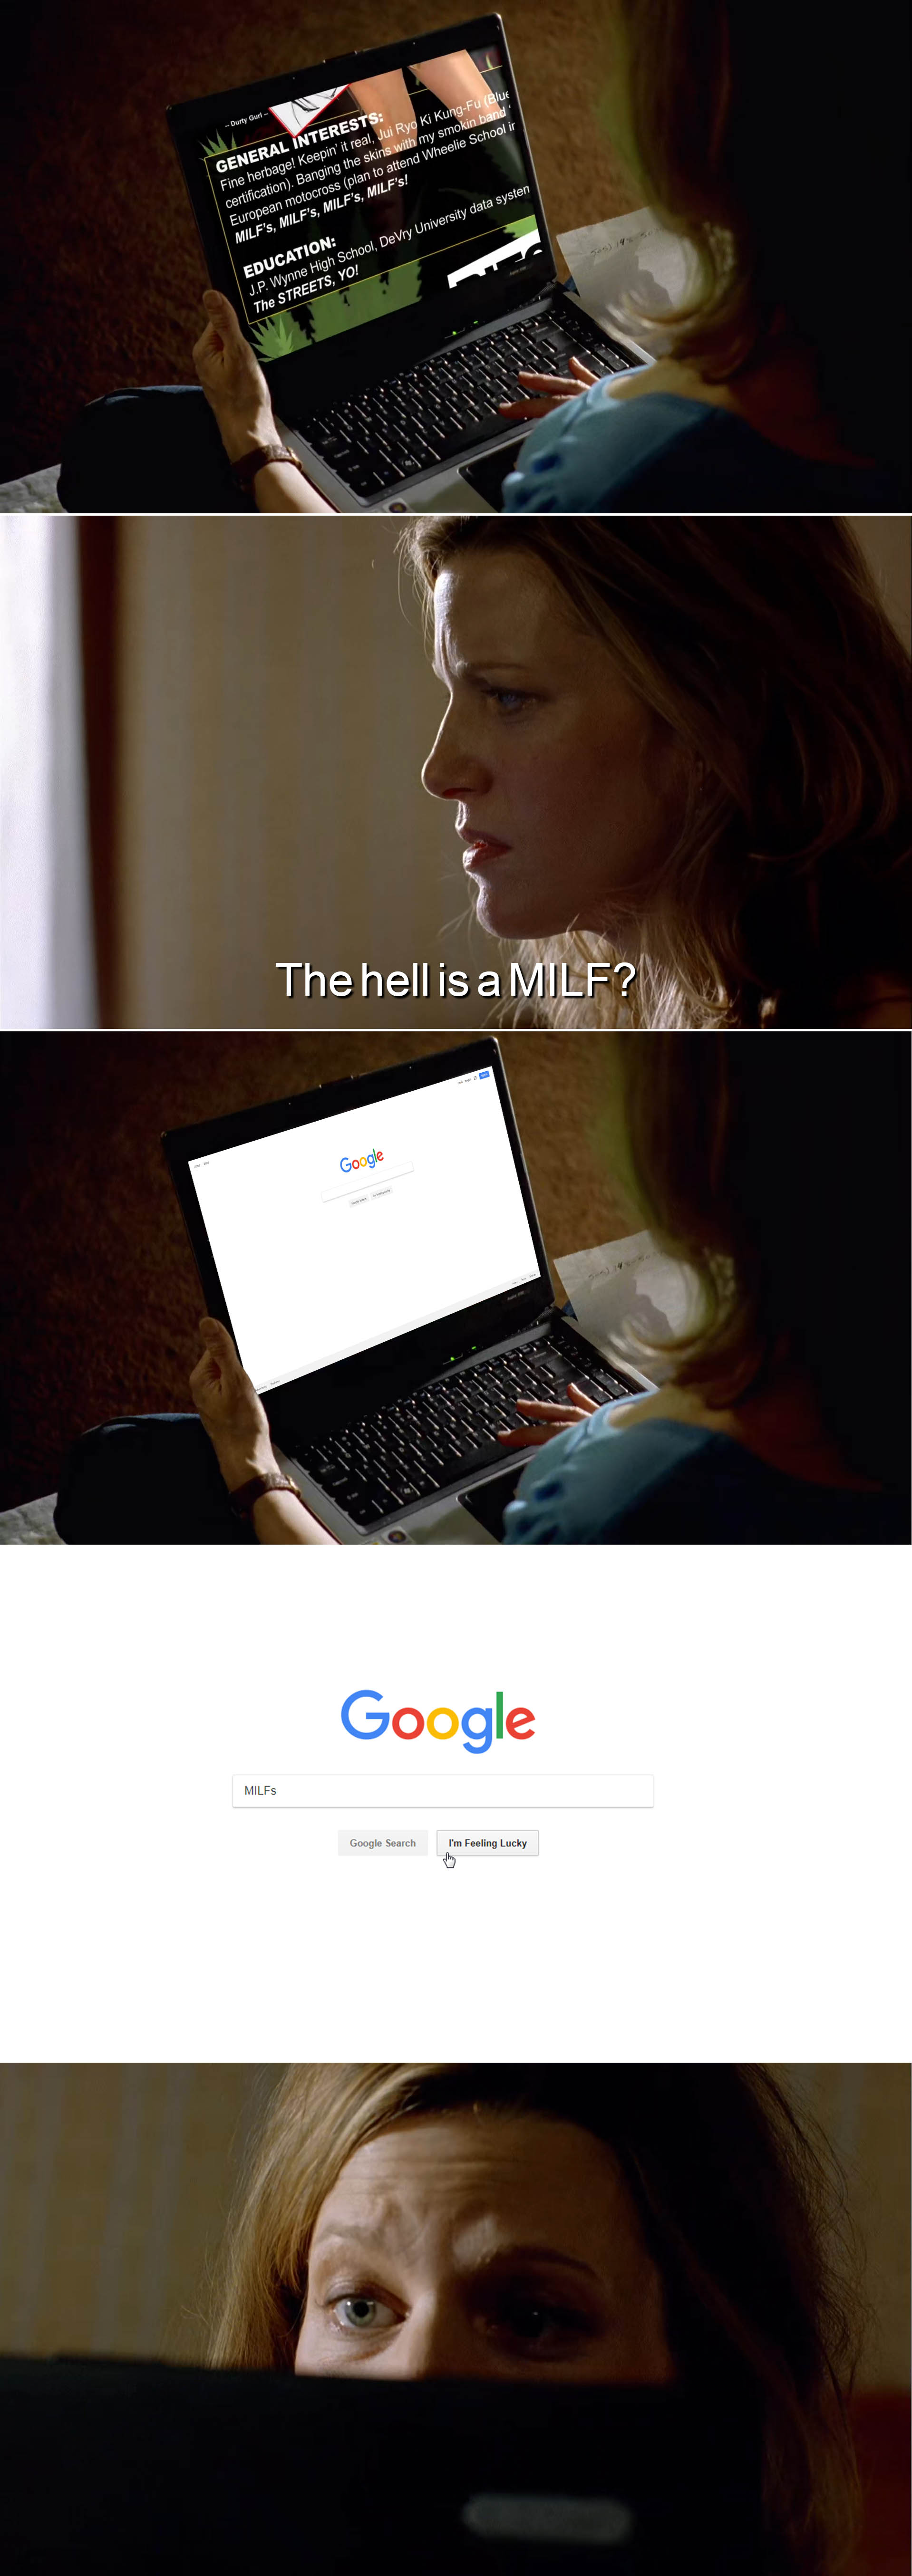 Milf what is a